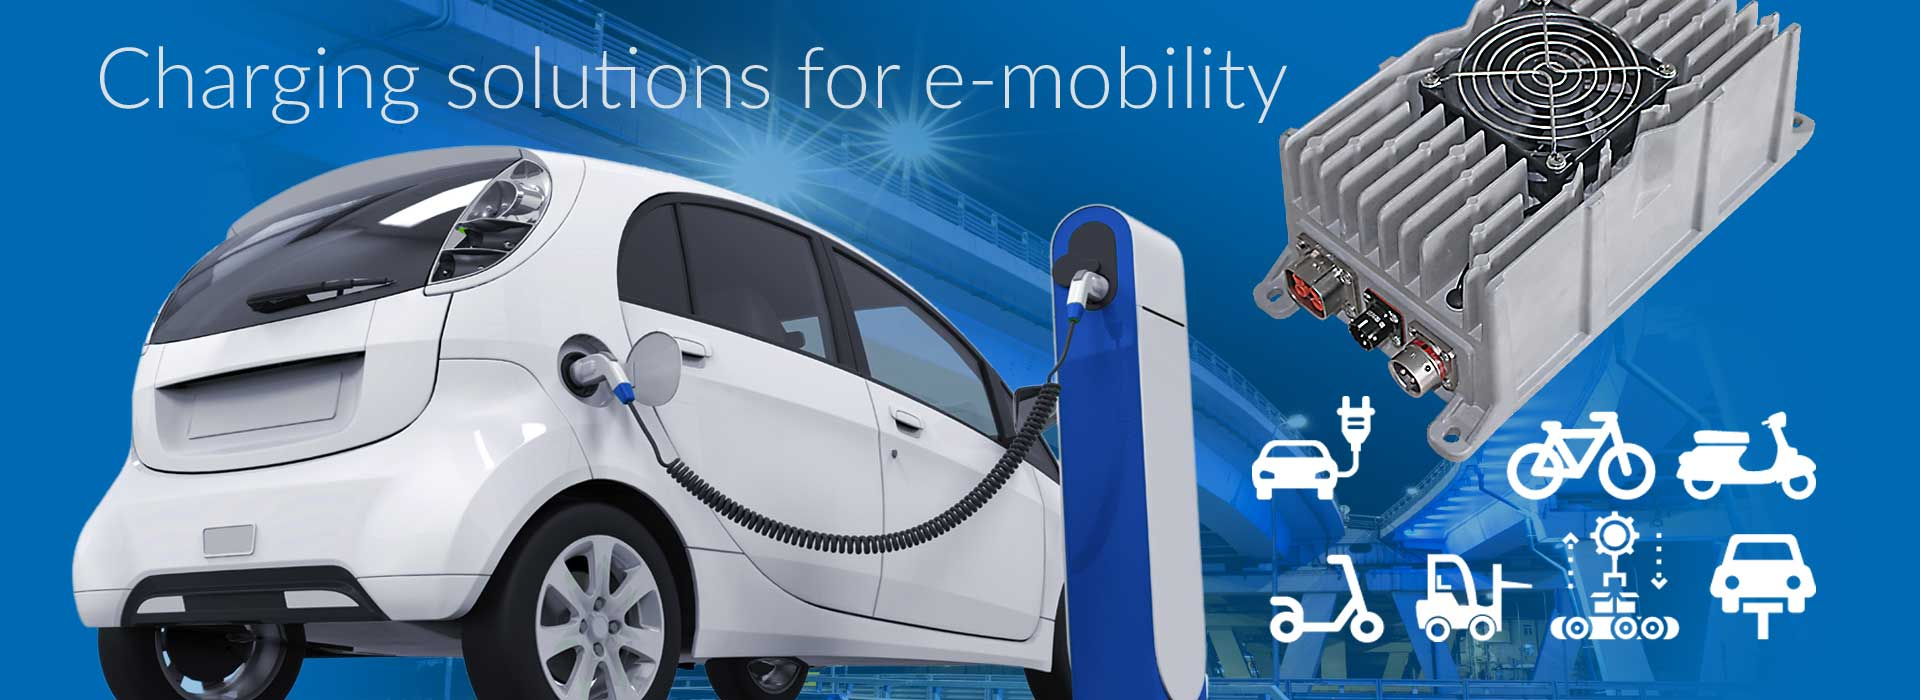 charging-solutions-for-e-mobility